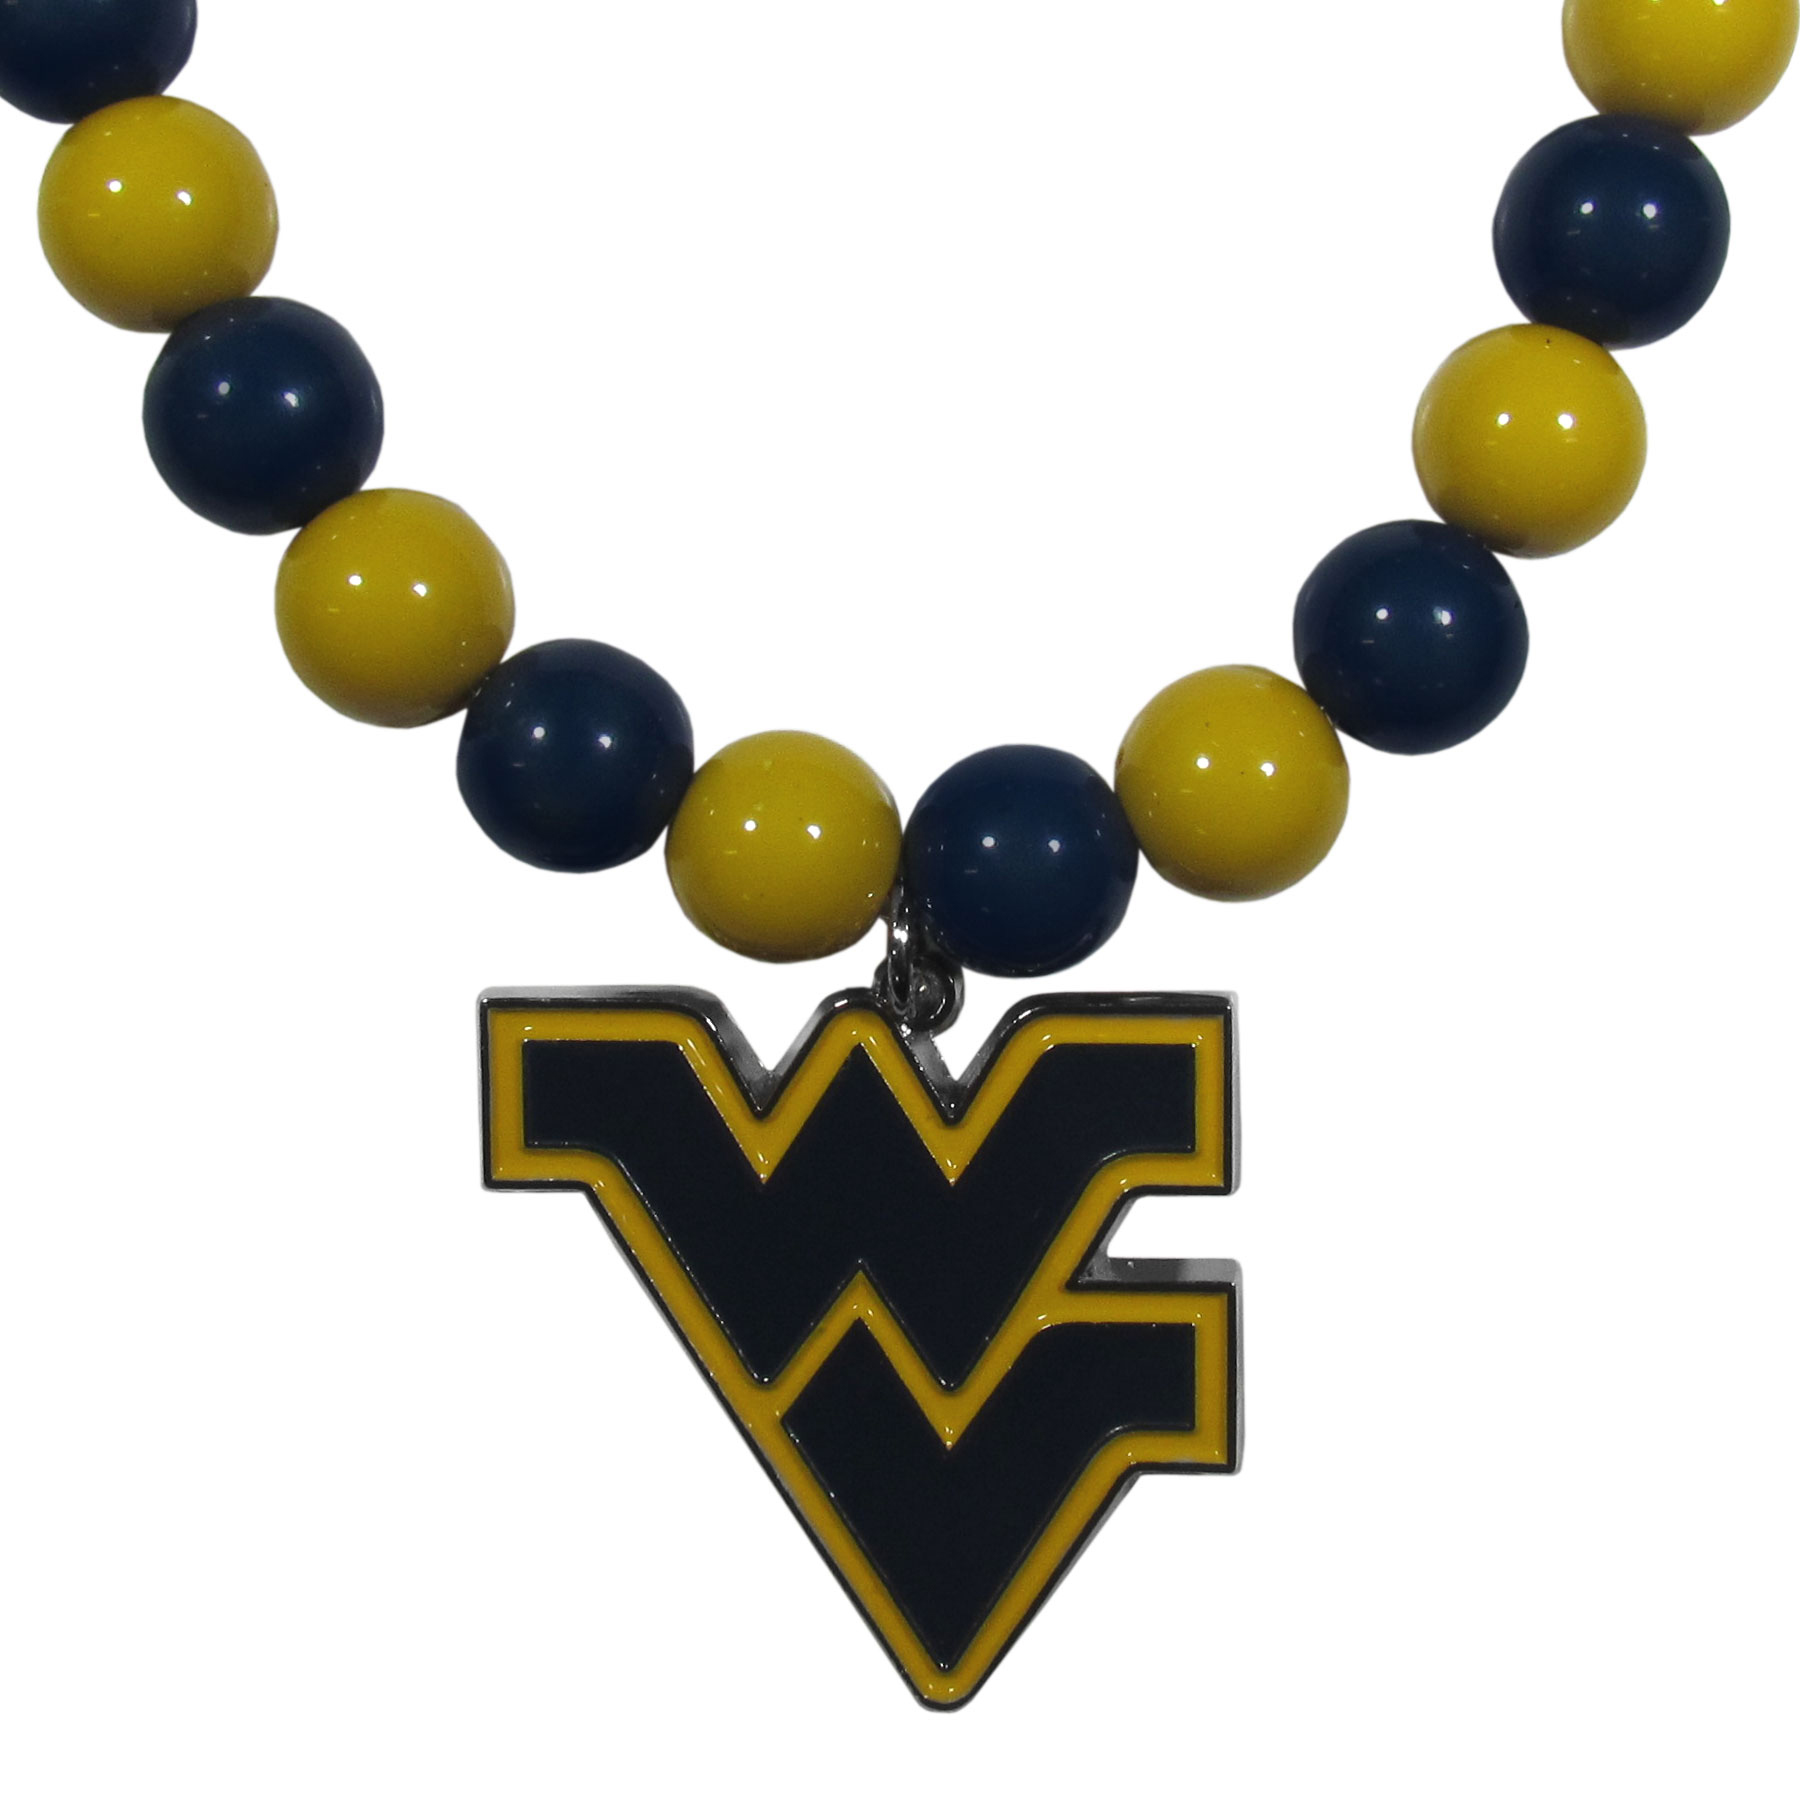 W. Virginia Mountaineers Fan Bead Necklace - Make a big statement with our fan bead necklaces! These brightly colored necklace have a 24 inch string of alternating colored beads with an extra large, high-polish W. Virginia Mountaineers pendant.